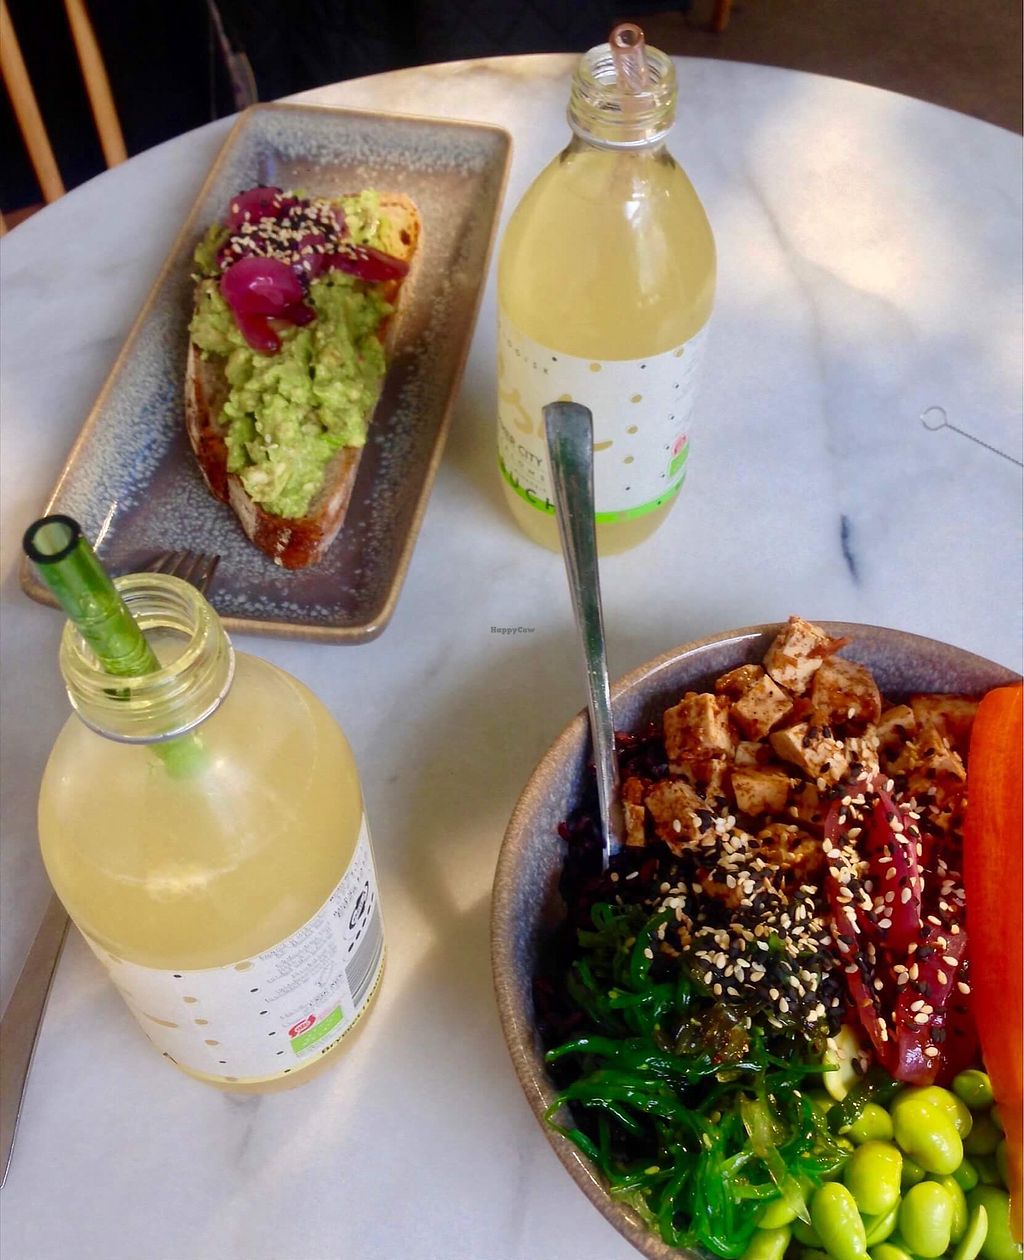 """Photo of California Kitchen  by <a href=""""/members/profile/KatjaValentinaKramp"""">KatjaValentinaKramp</a> <br/>Asian bowl and smashed avo toast <br/> January 29, 2018  - <a href='/contact/abuse/image/83788/352463'>Report</a>"""